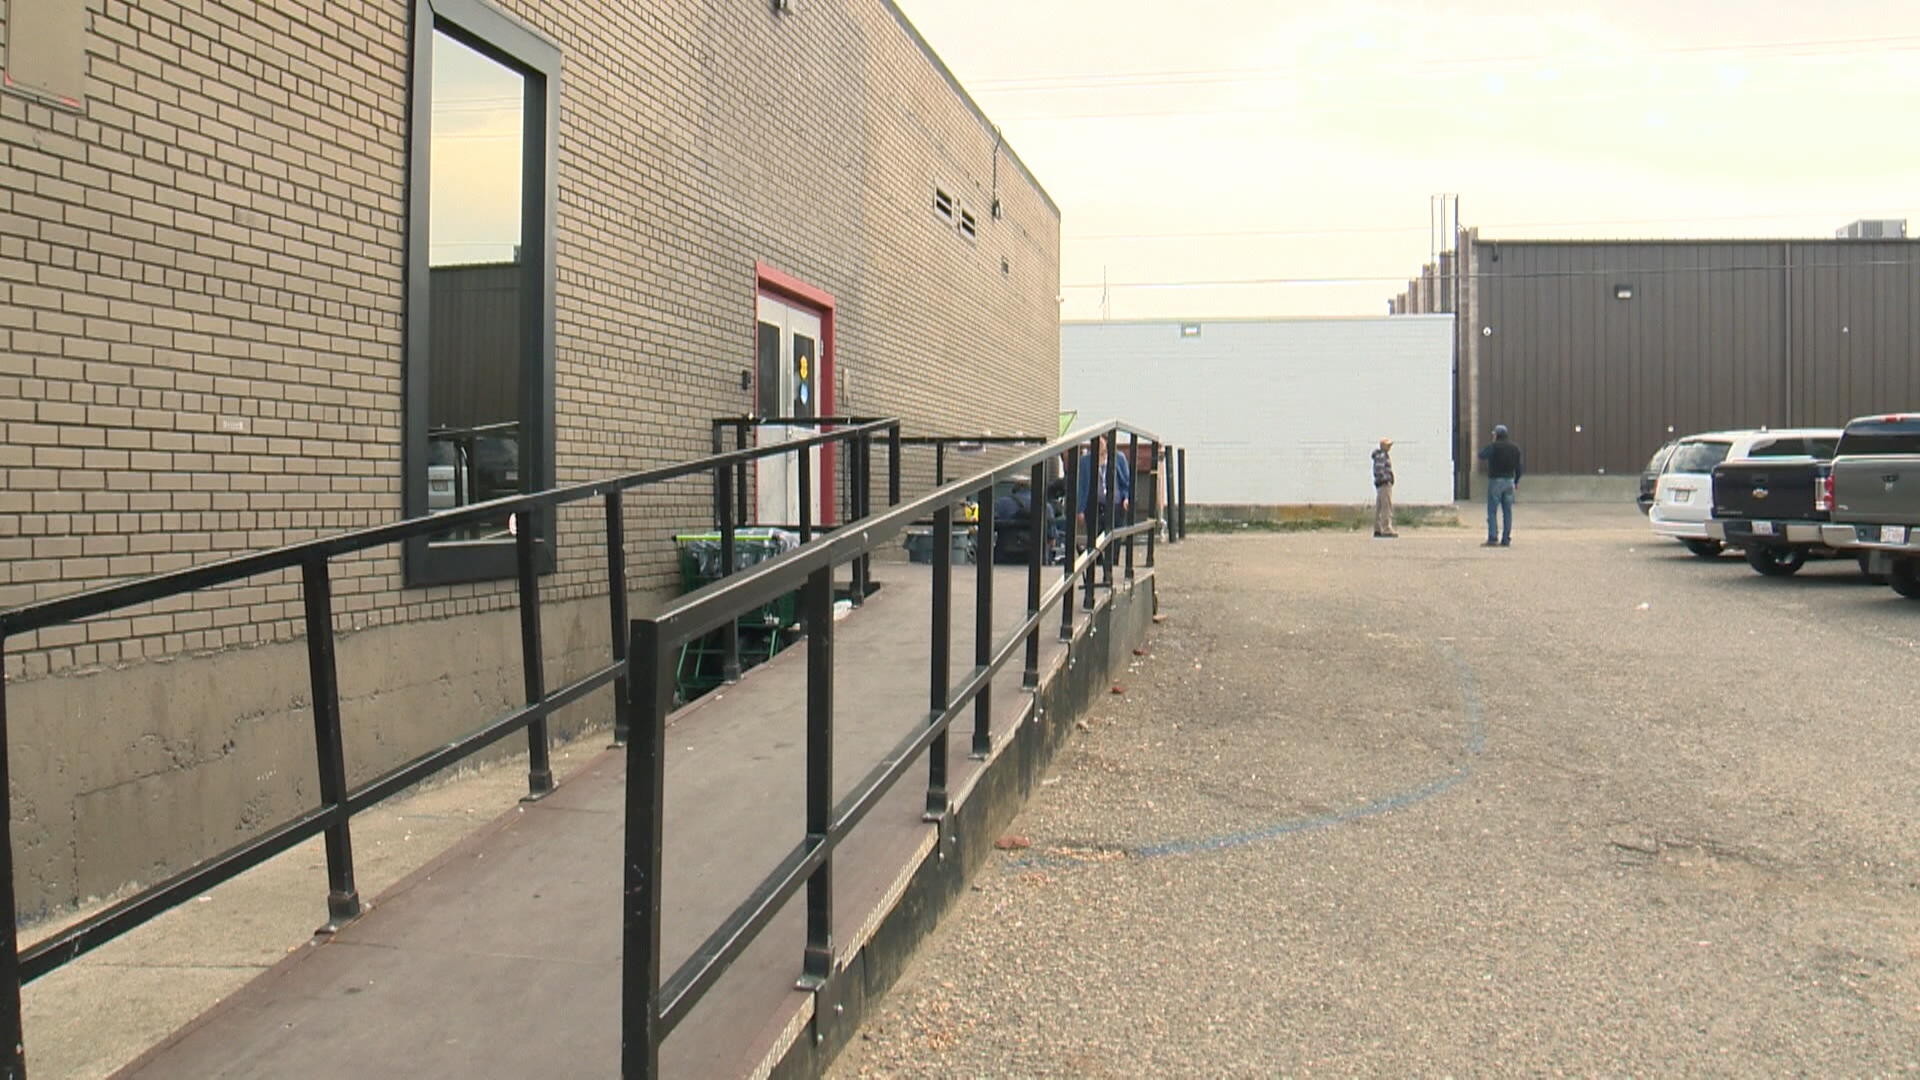 Study: Lethbridge businesses seeing increase in antisocial behaviours